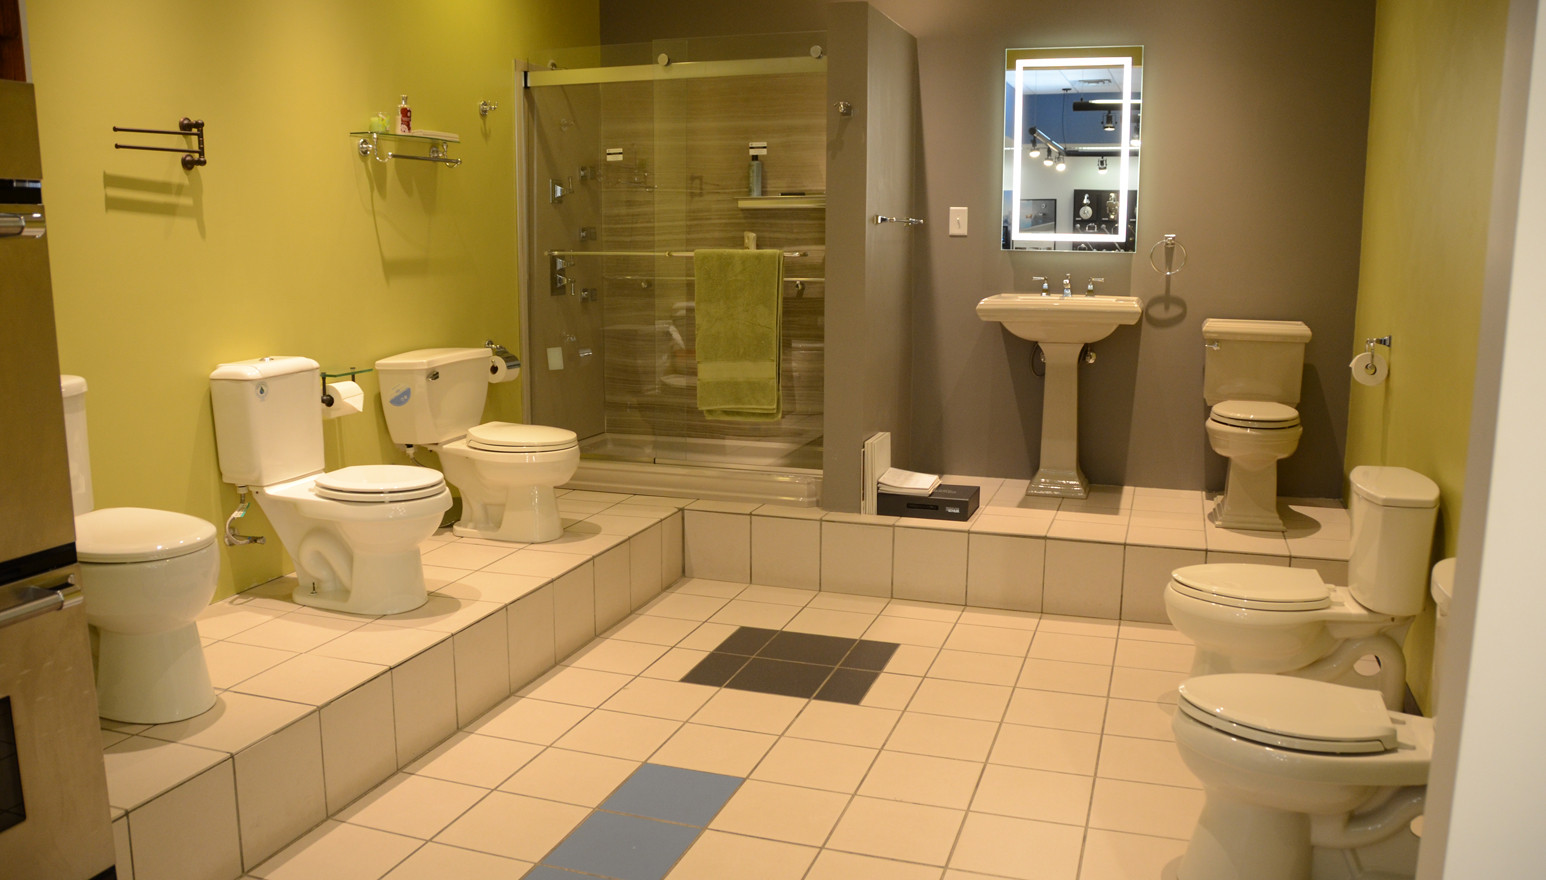 Working Display Toilets & Shower